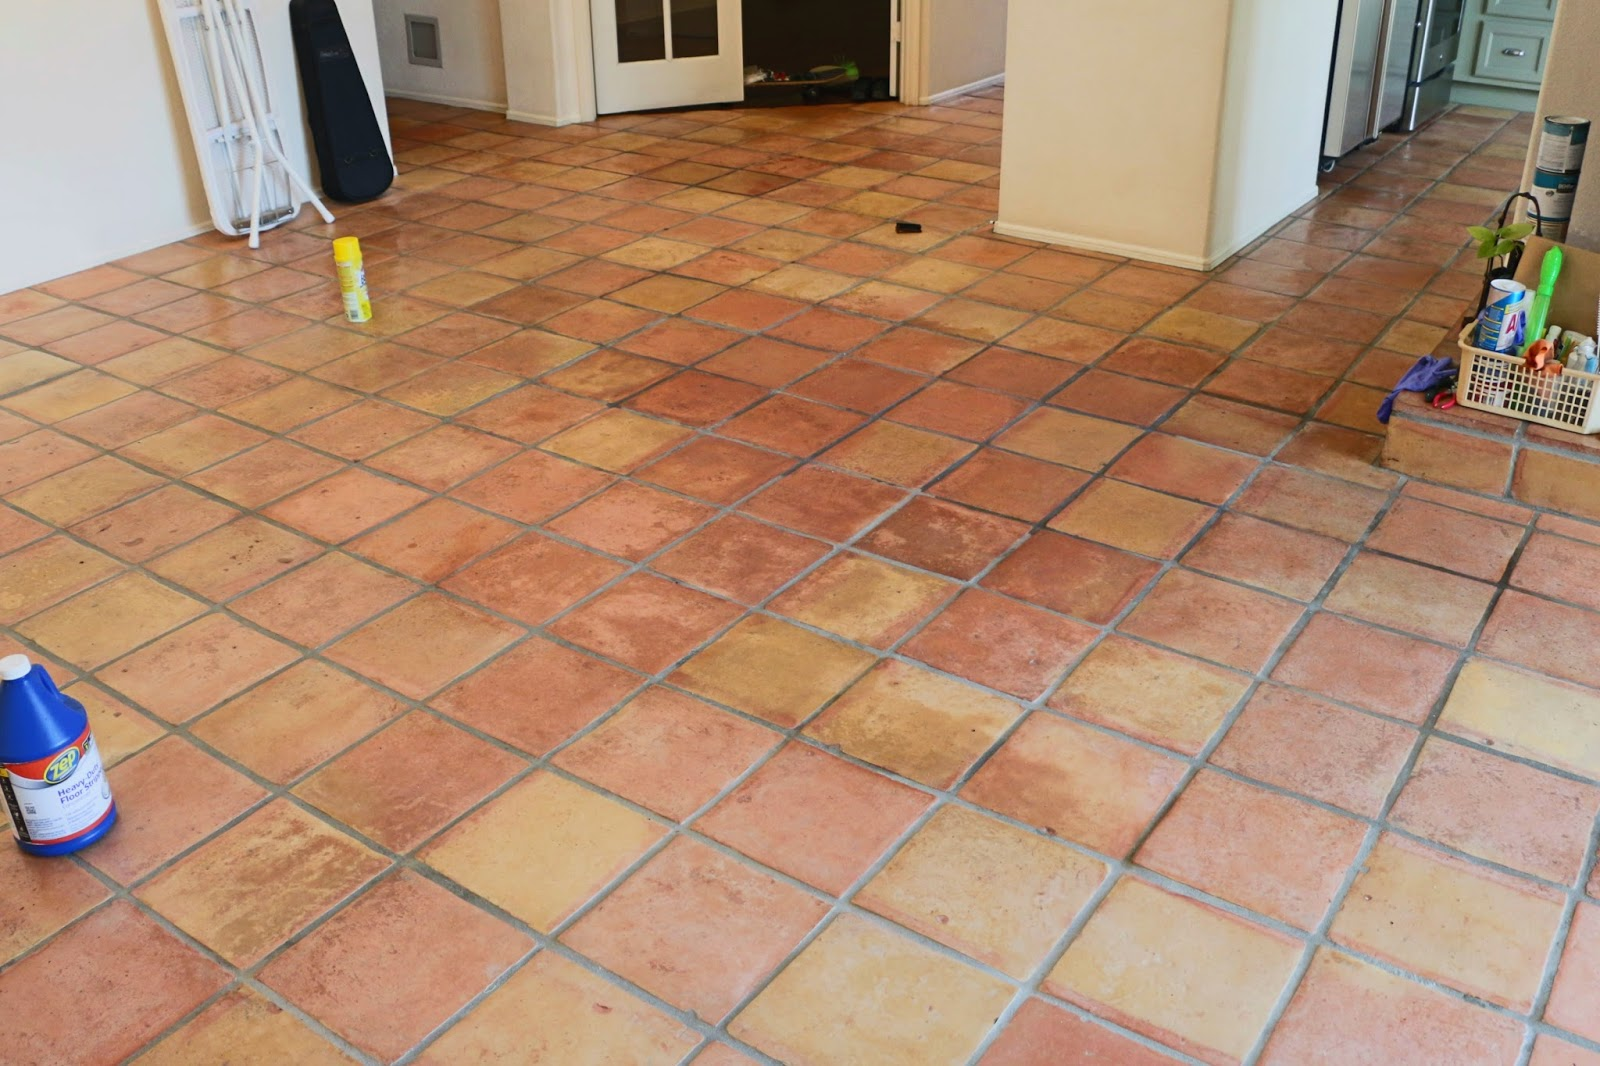 Dull tile floor